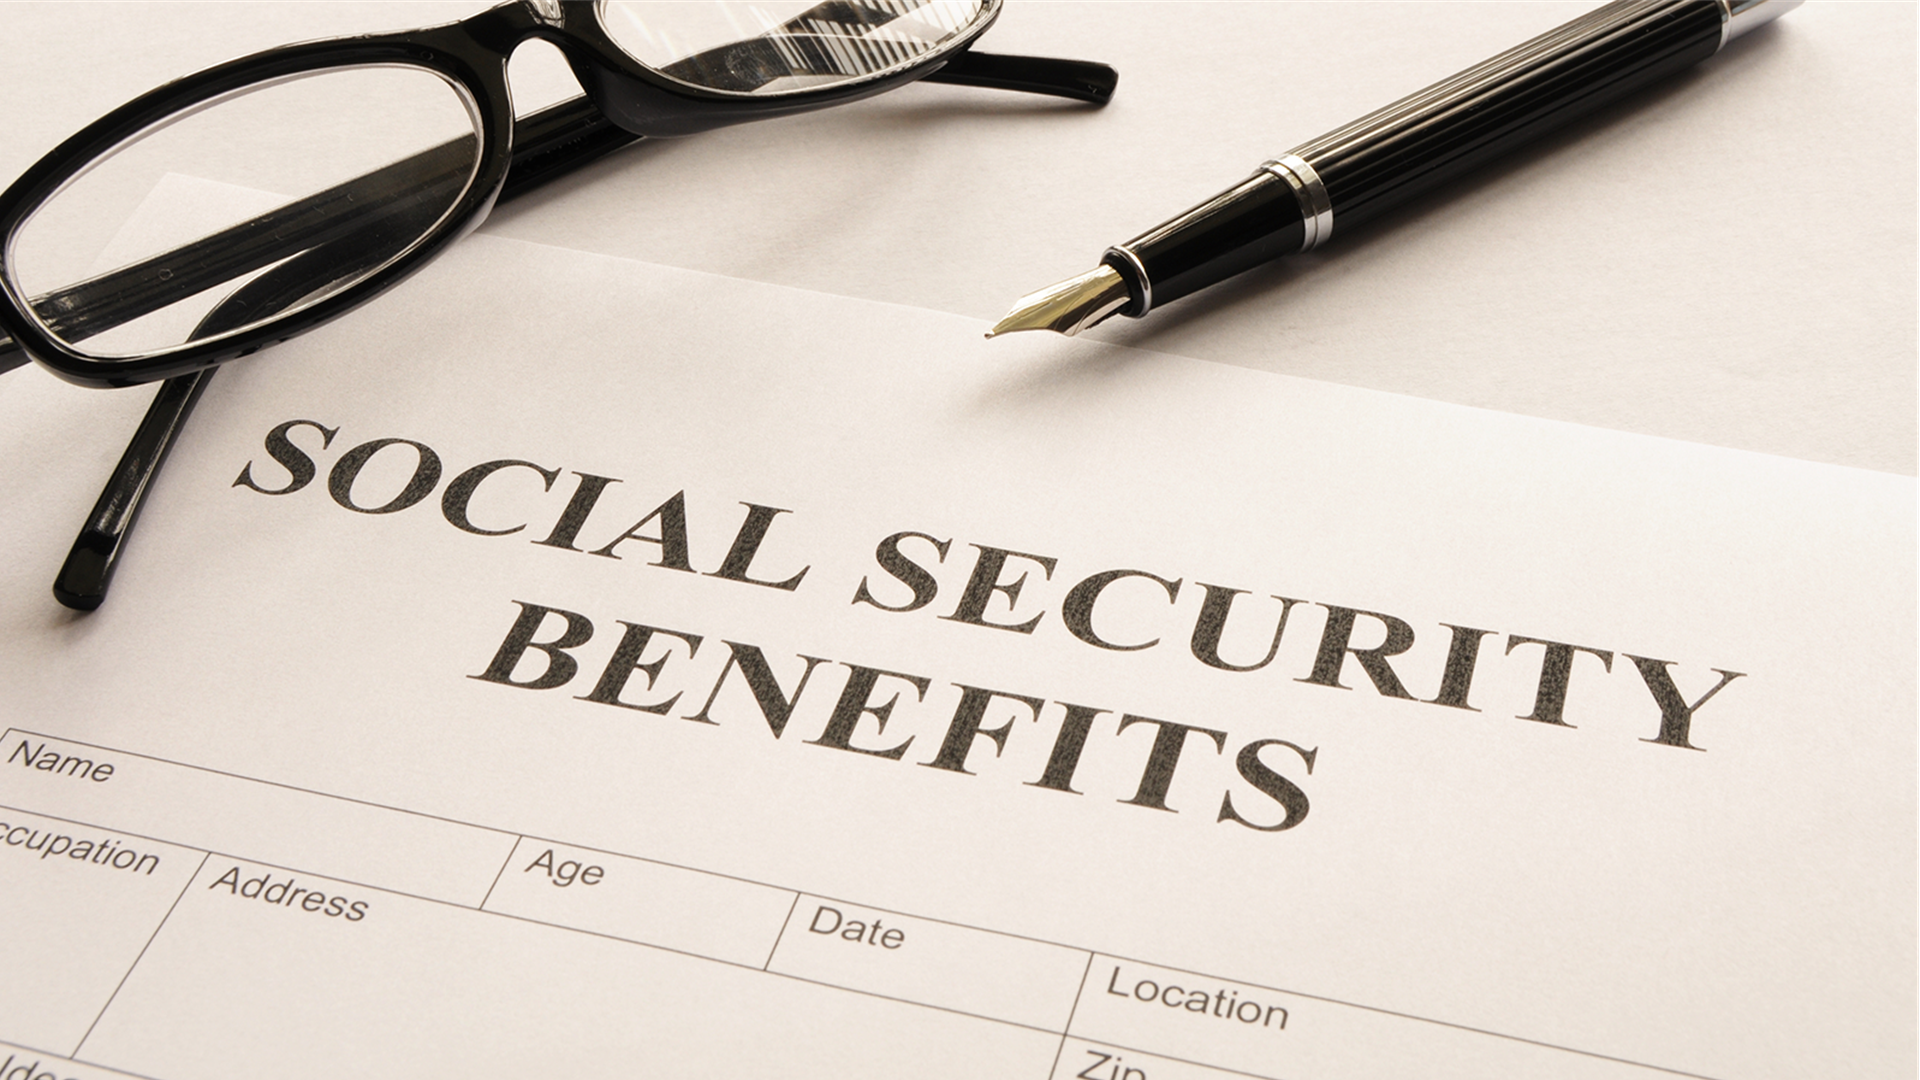 Social Secuirty Benefit